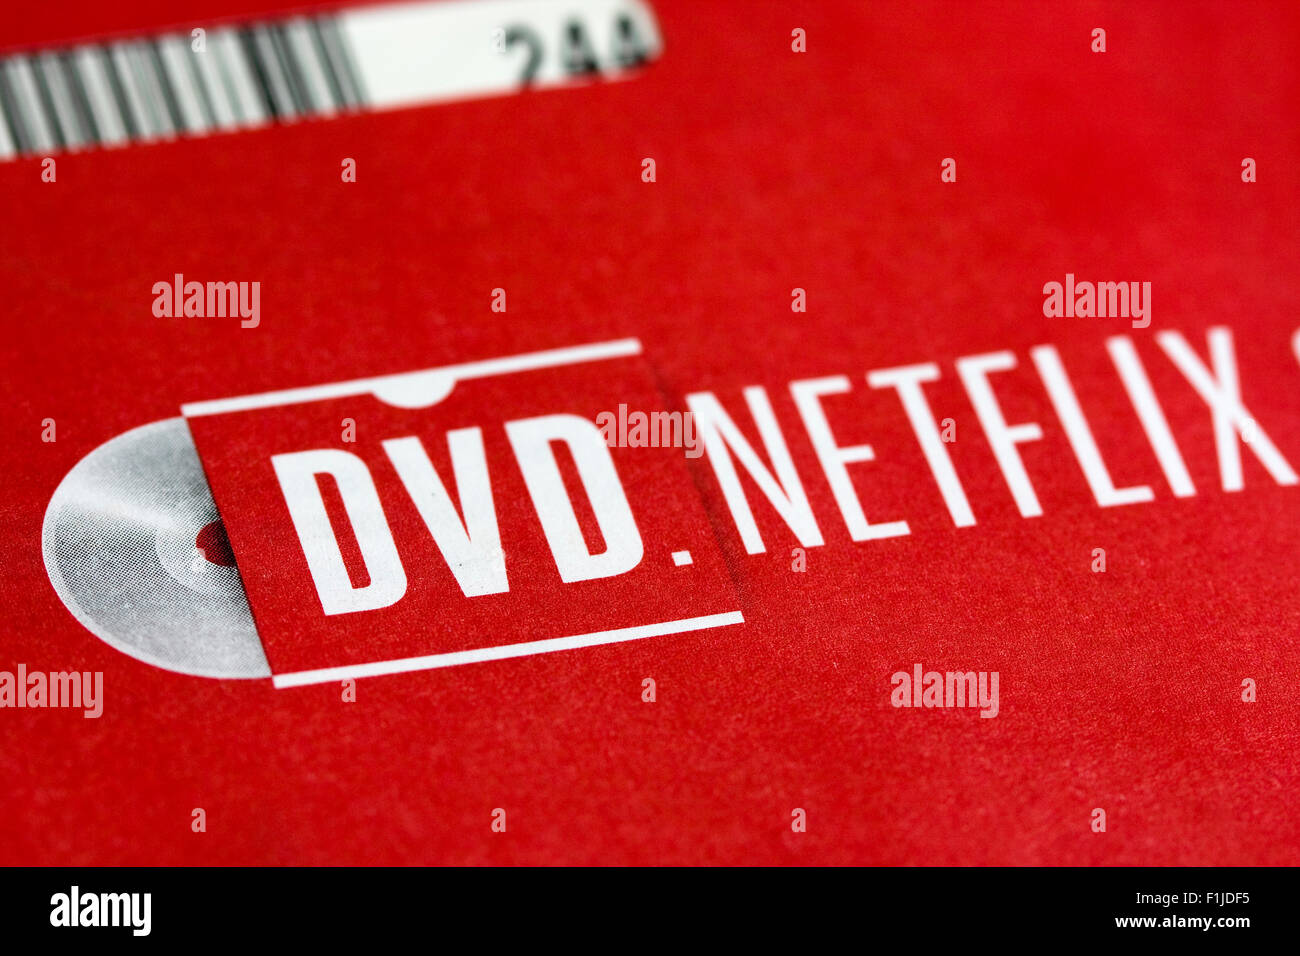 NETFLIX logo on red envelope used for returning a rented DVD by mail with sleeve barcode visible at upper left - Stock Image